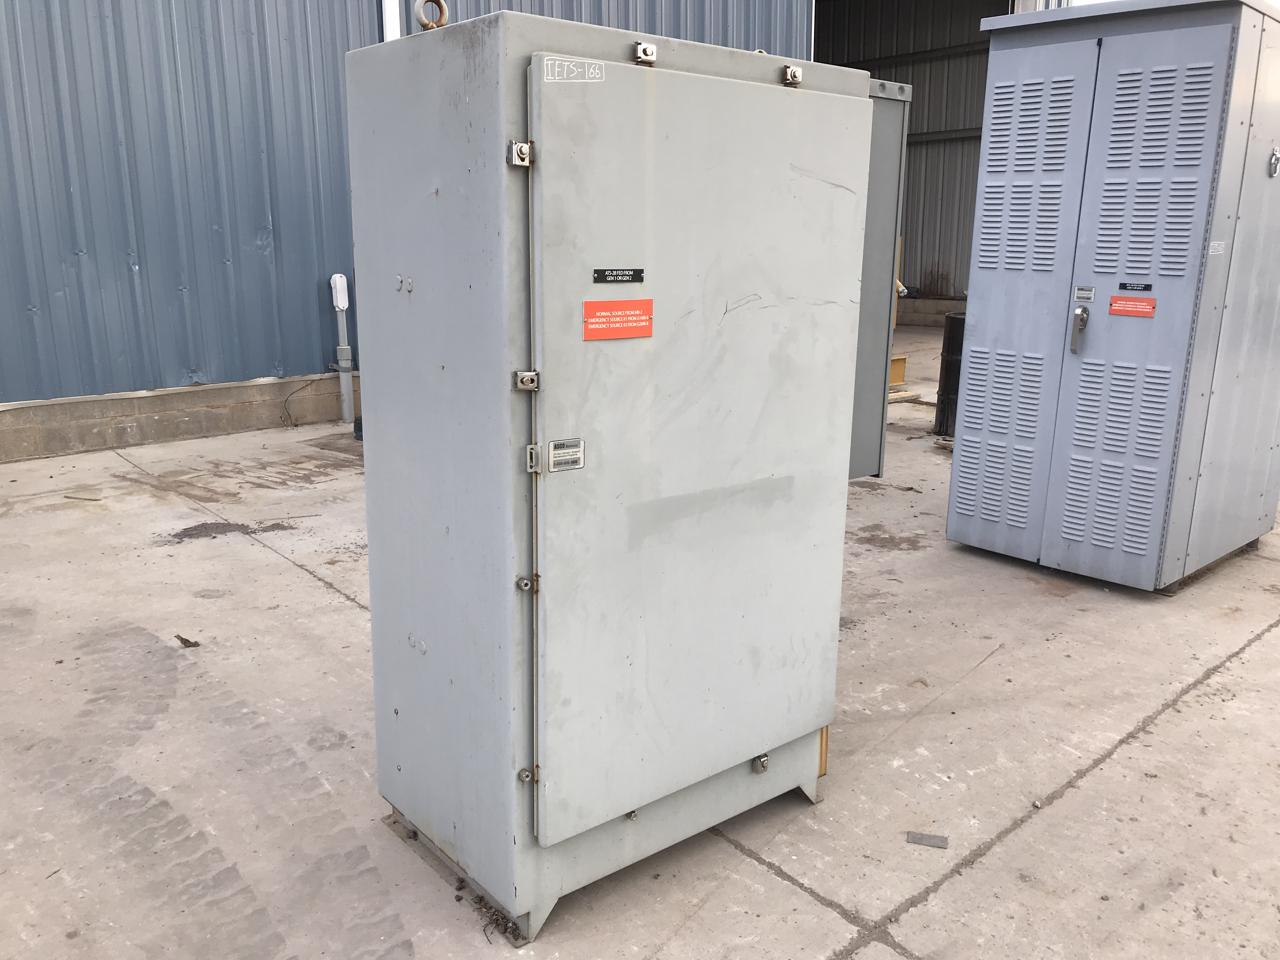 service entrance transfer switch ats asco 7000 series emerson2007 7000 series asco 800 amp, 208 volt transfer switch, nema 3 w2007 7000